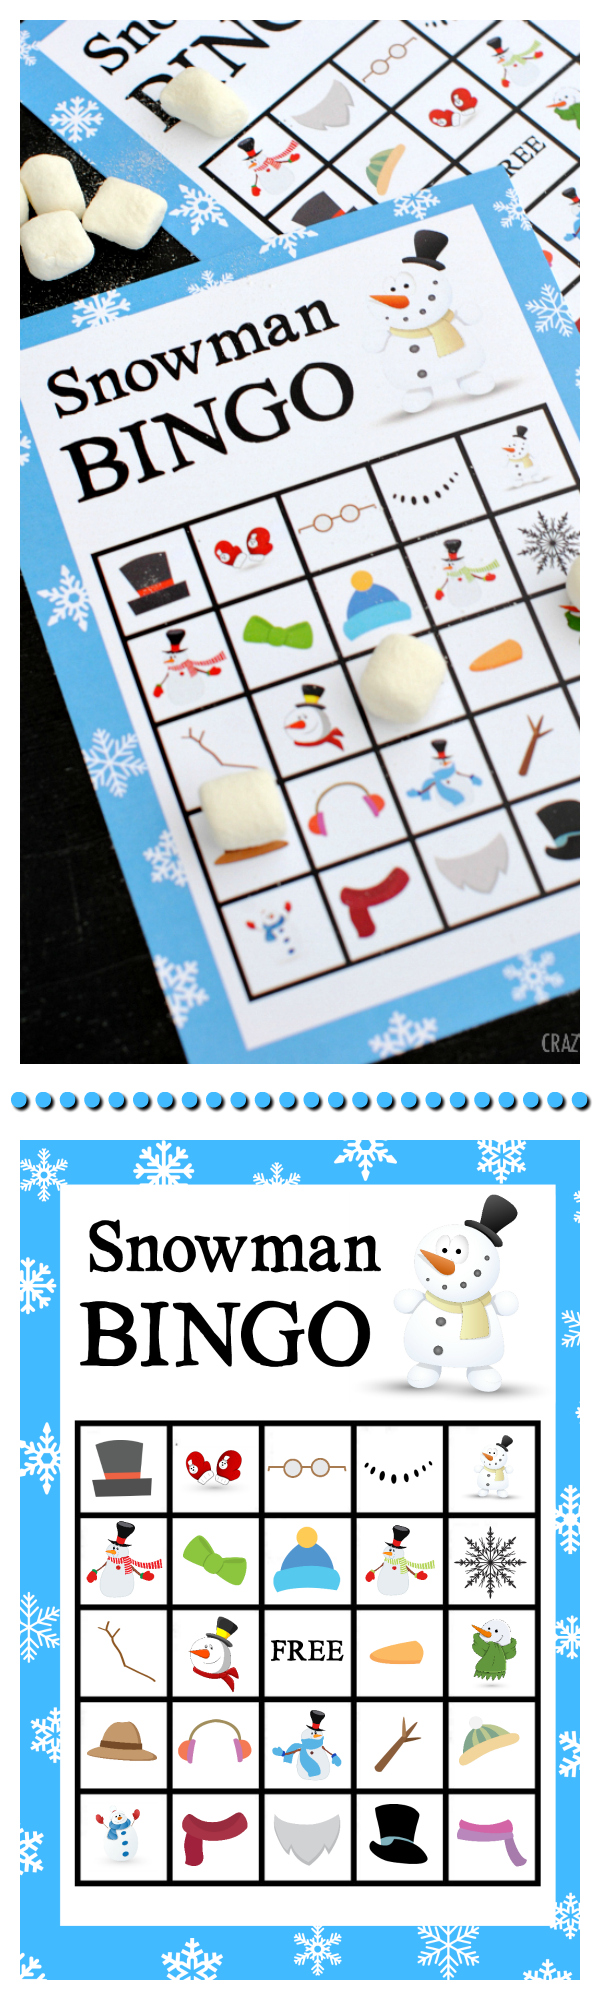 Free Printable Snowman Bingo Game-Great Winter Activity for Kids